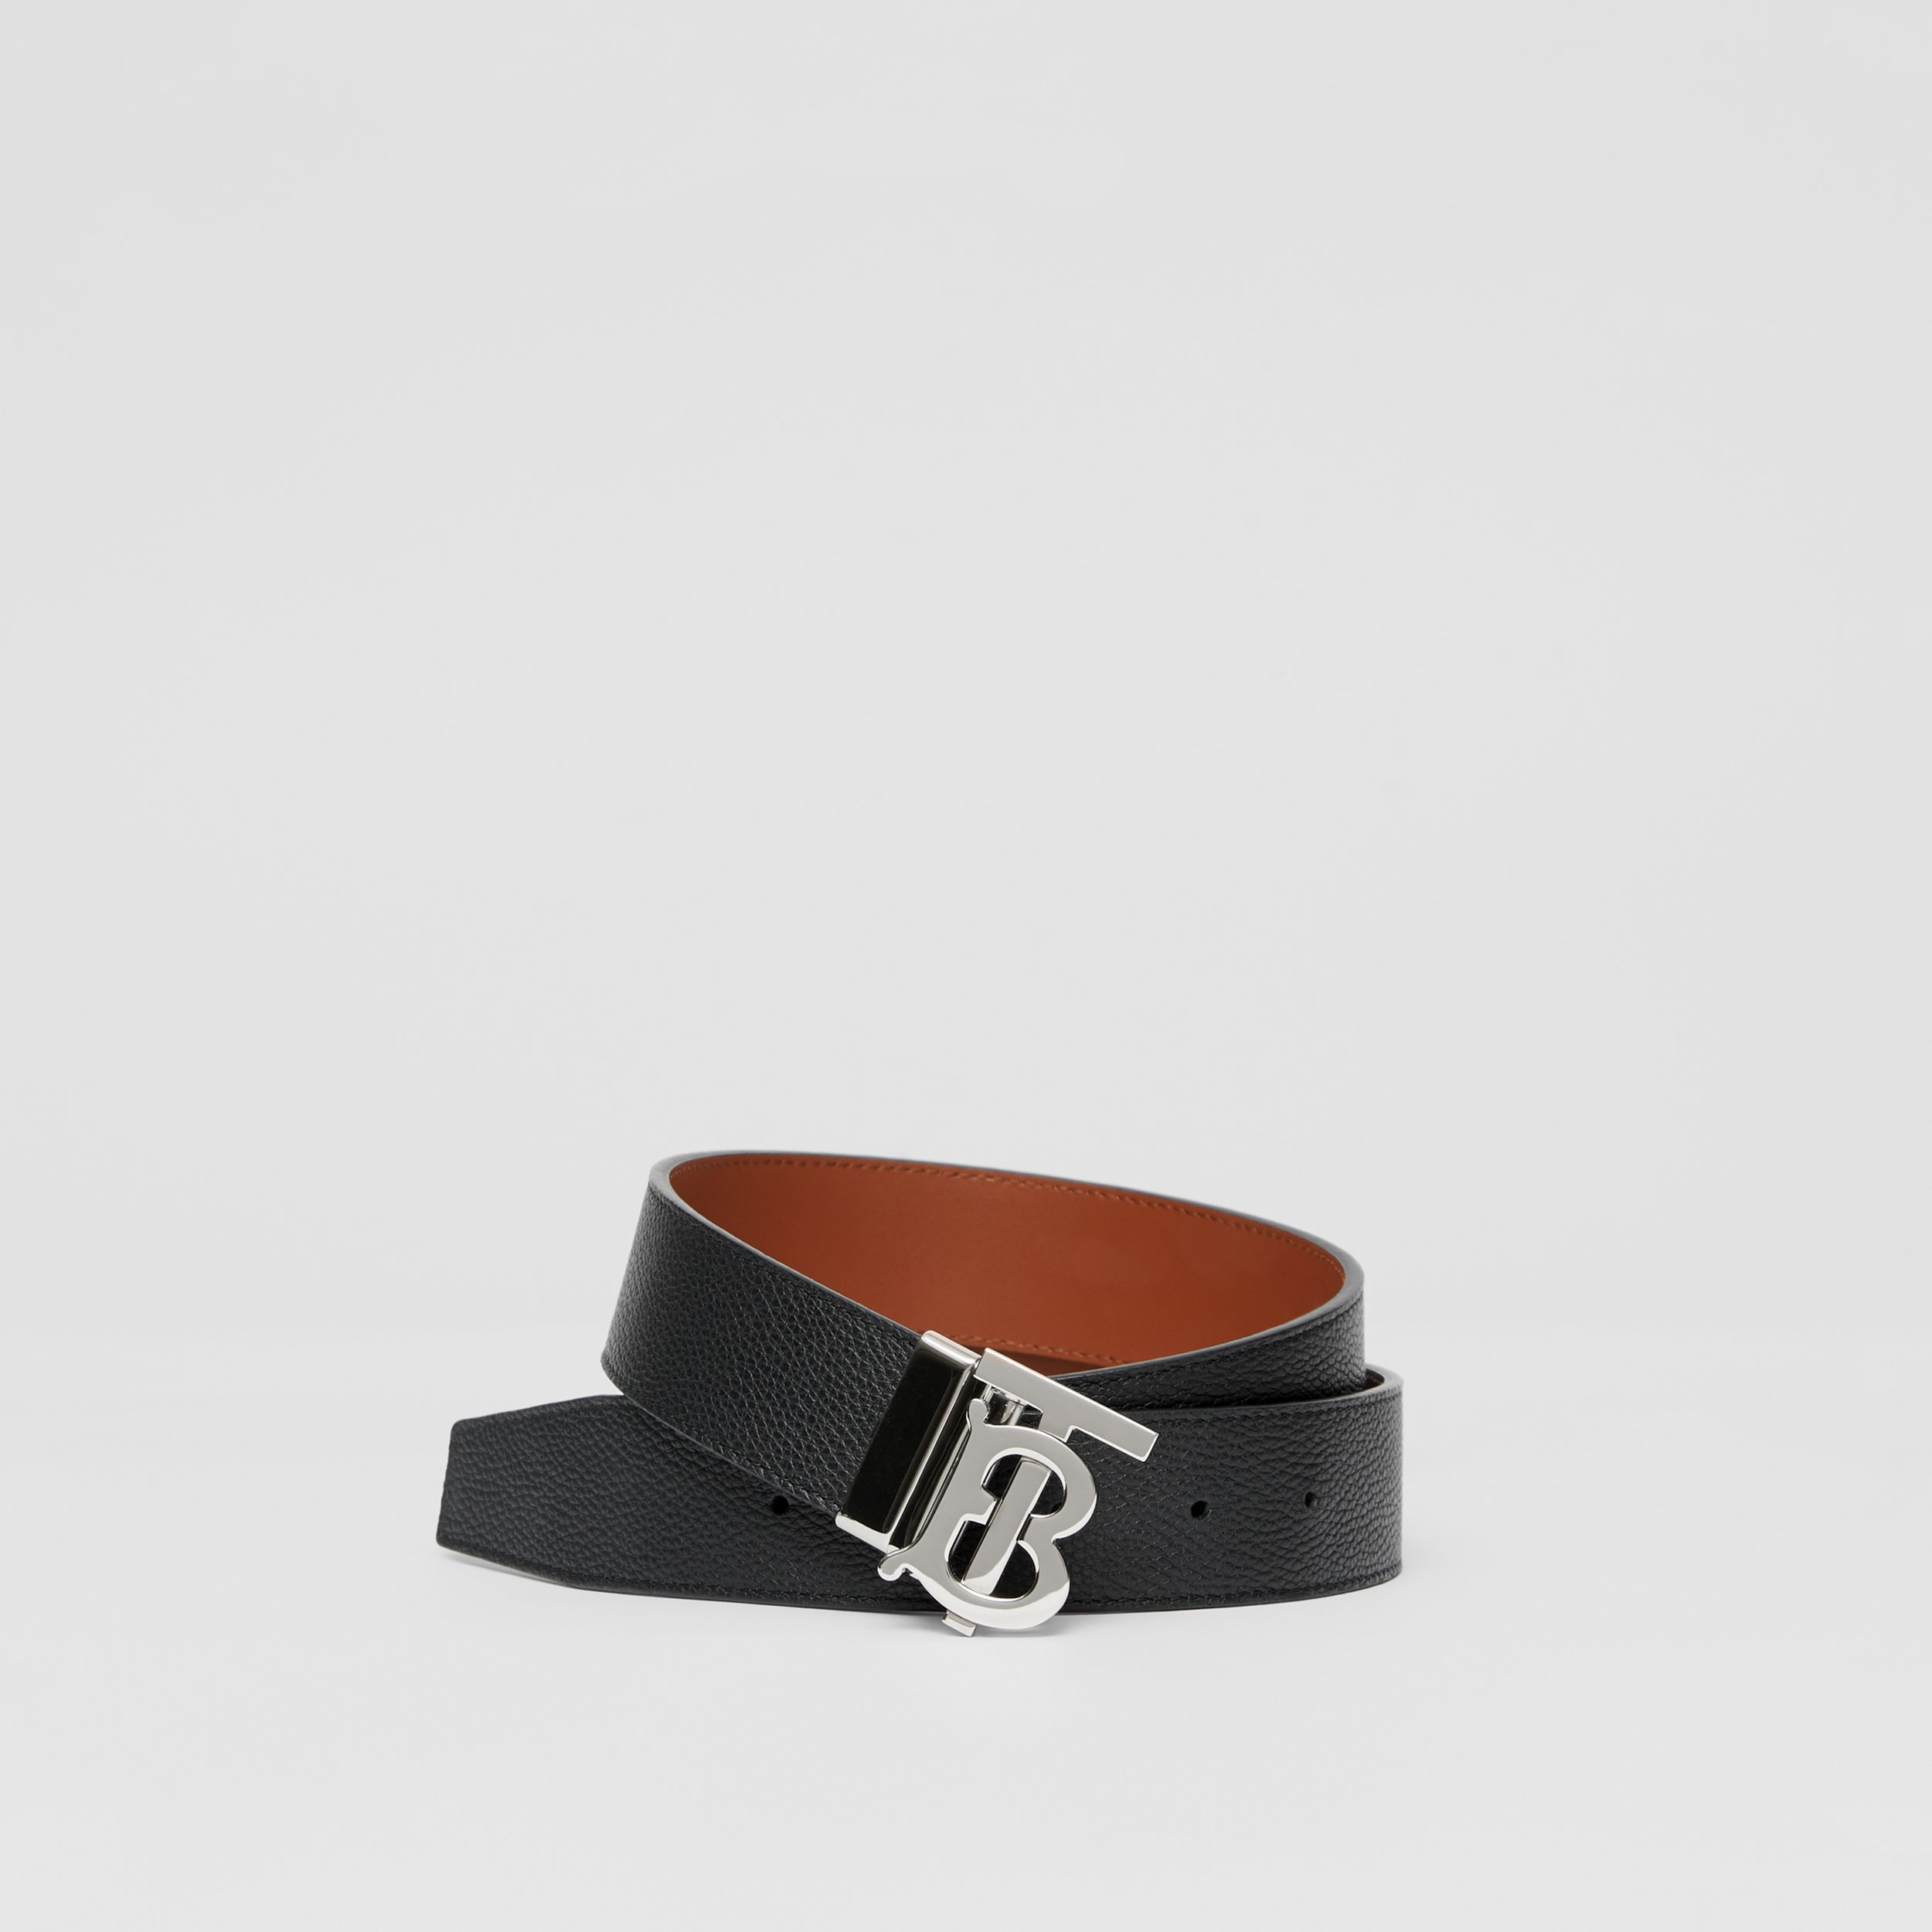 Reversible Monogram Motif Leather Belt in Black/tan - Men | Burberry - 1